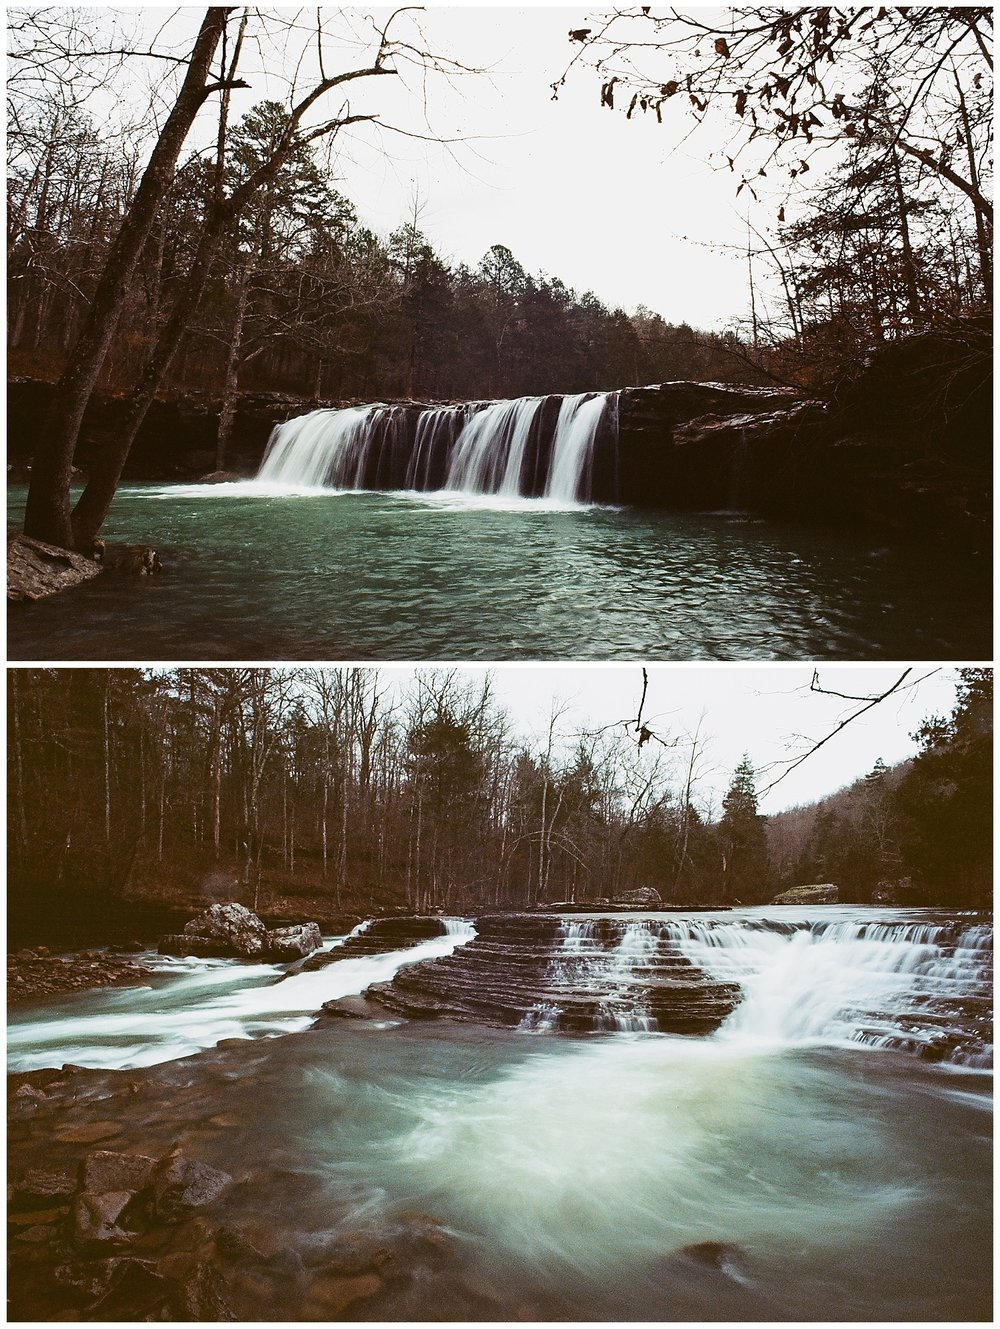 Falling Water Falls & Six Finger Falls on Ektar 100 +1